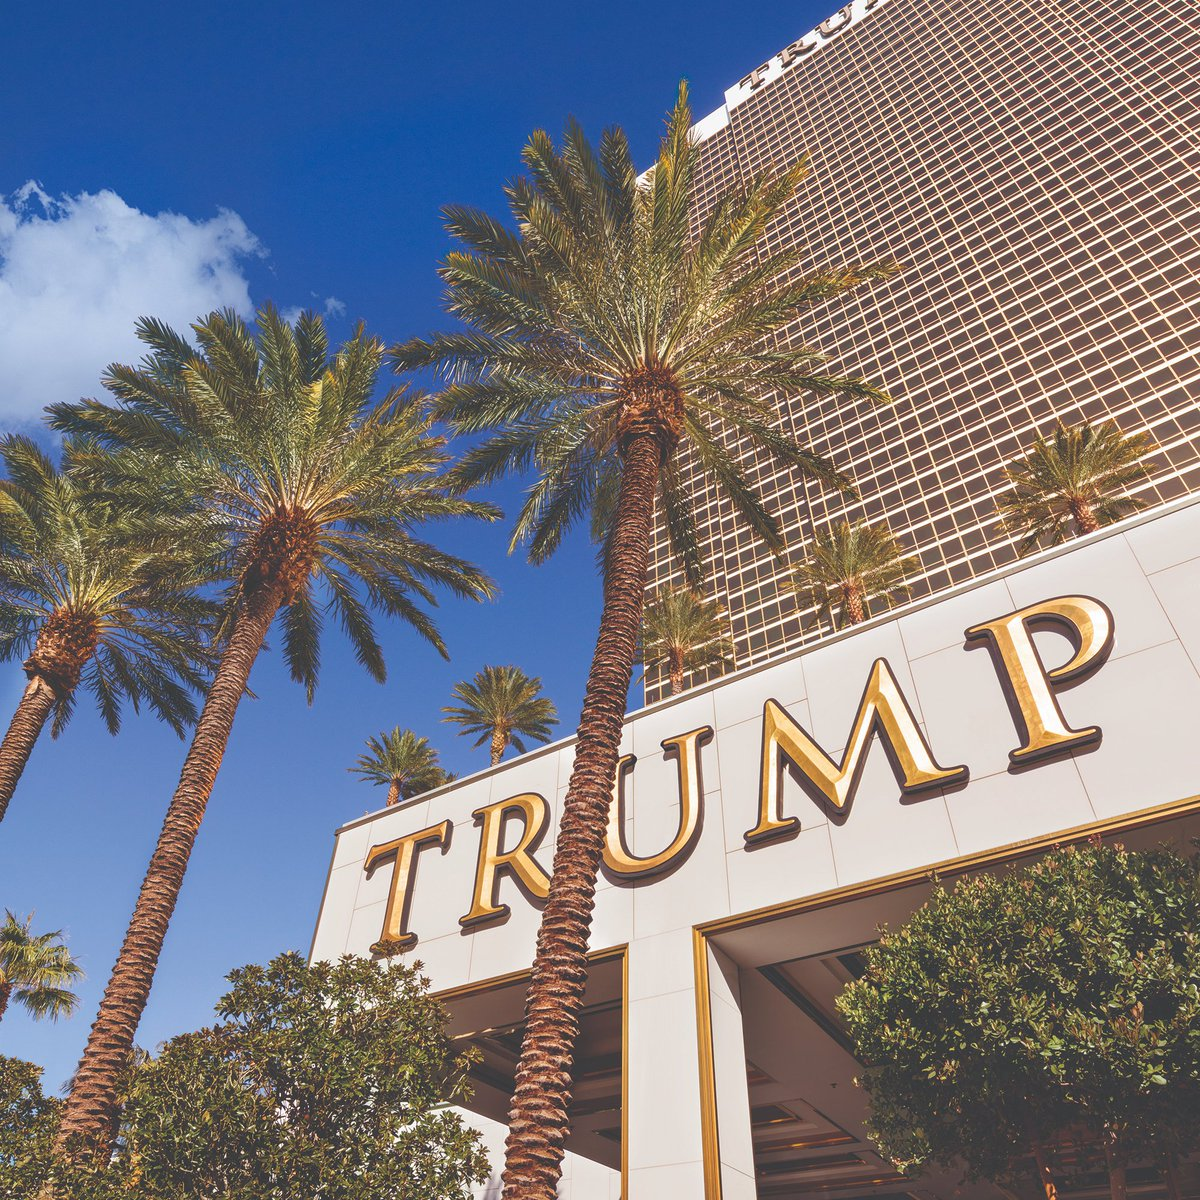 This is living to the highest standard – the Trump level of luxury in a city that never disappoints. #NeverSettle @TrumpLasVegas https://t.co/1AZXcSoZZc https://t.co/JJKSm42WED